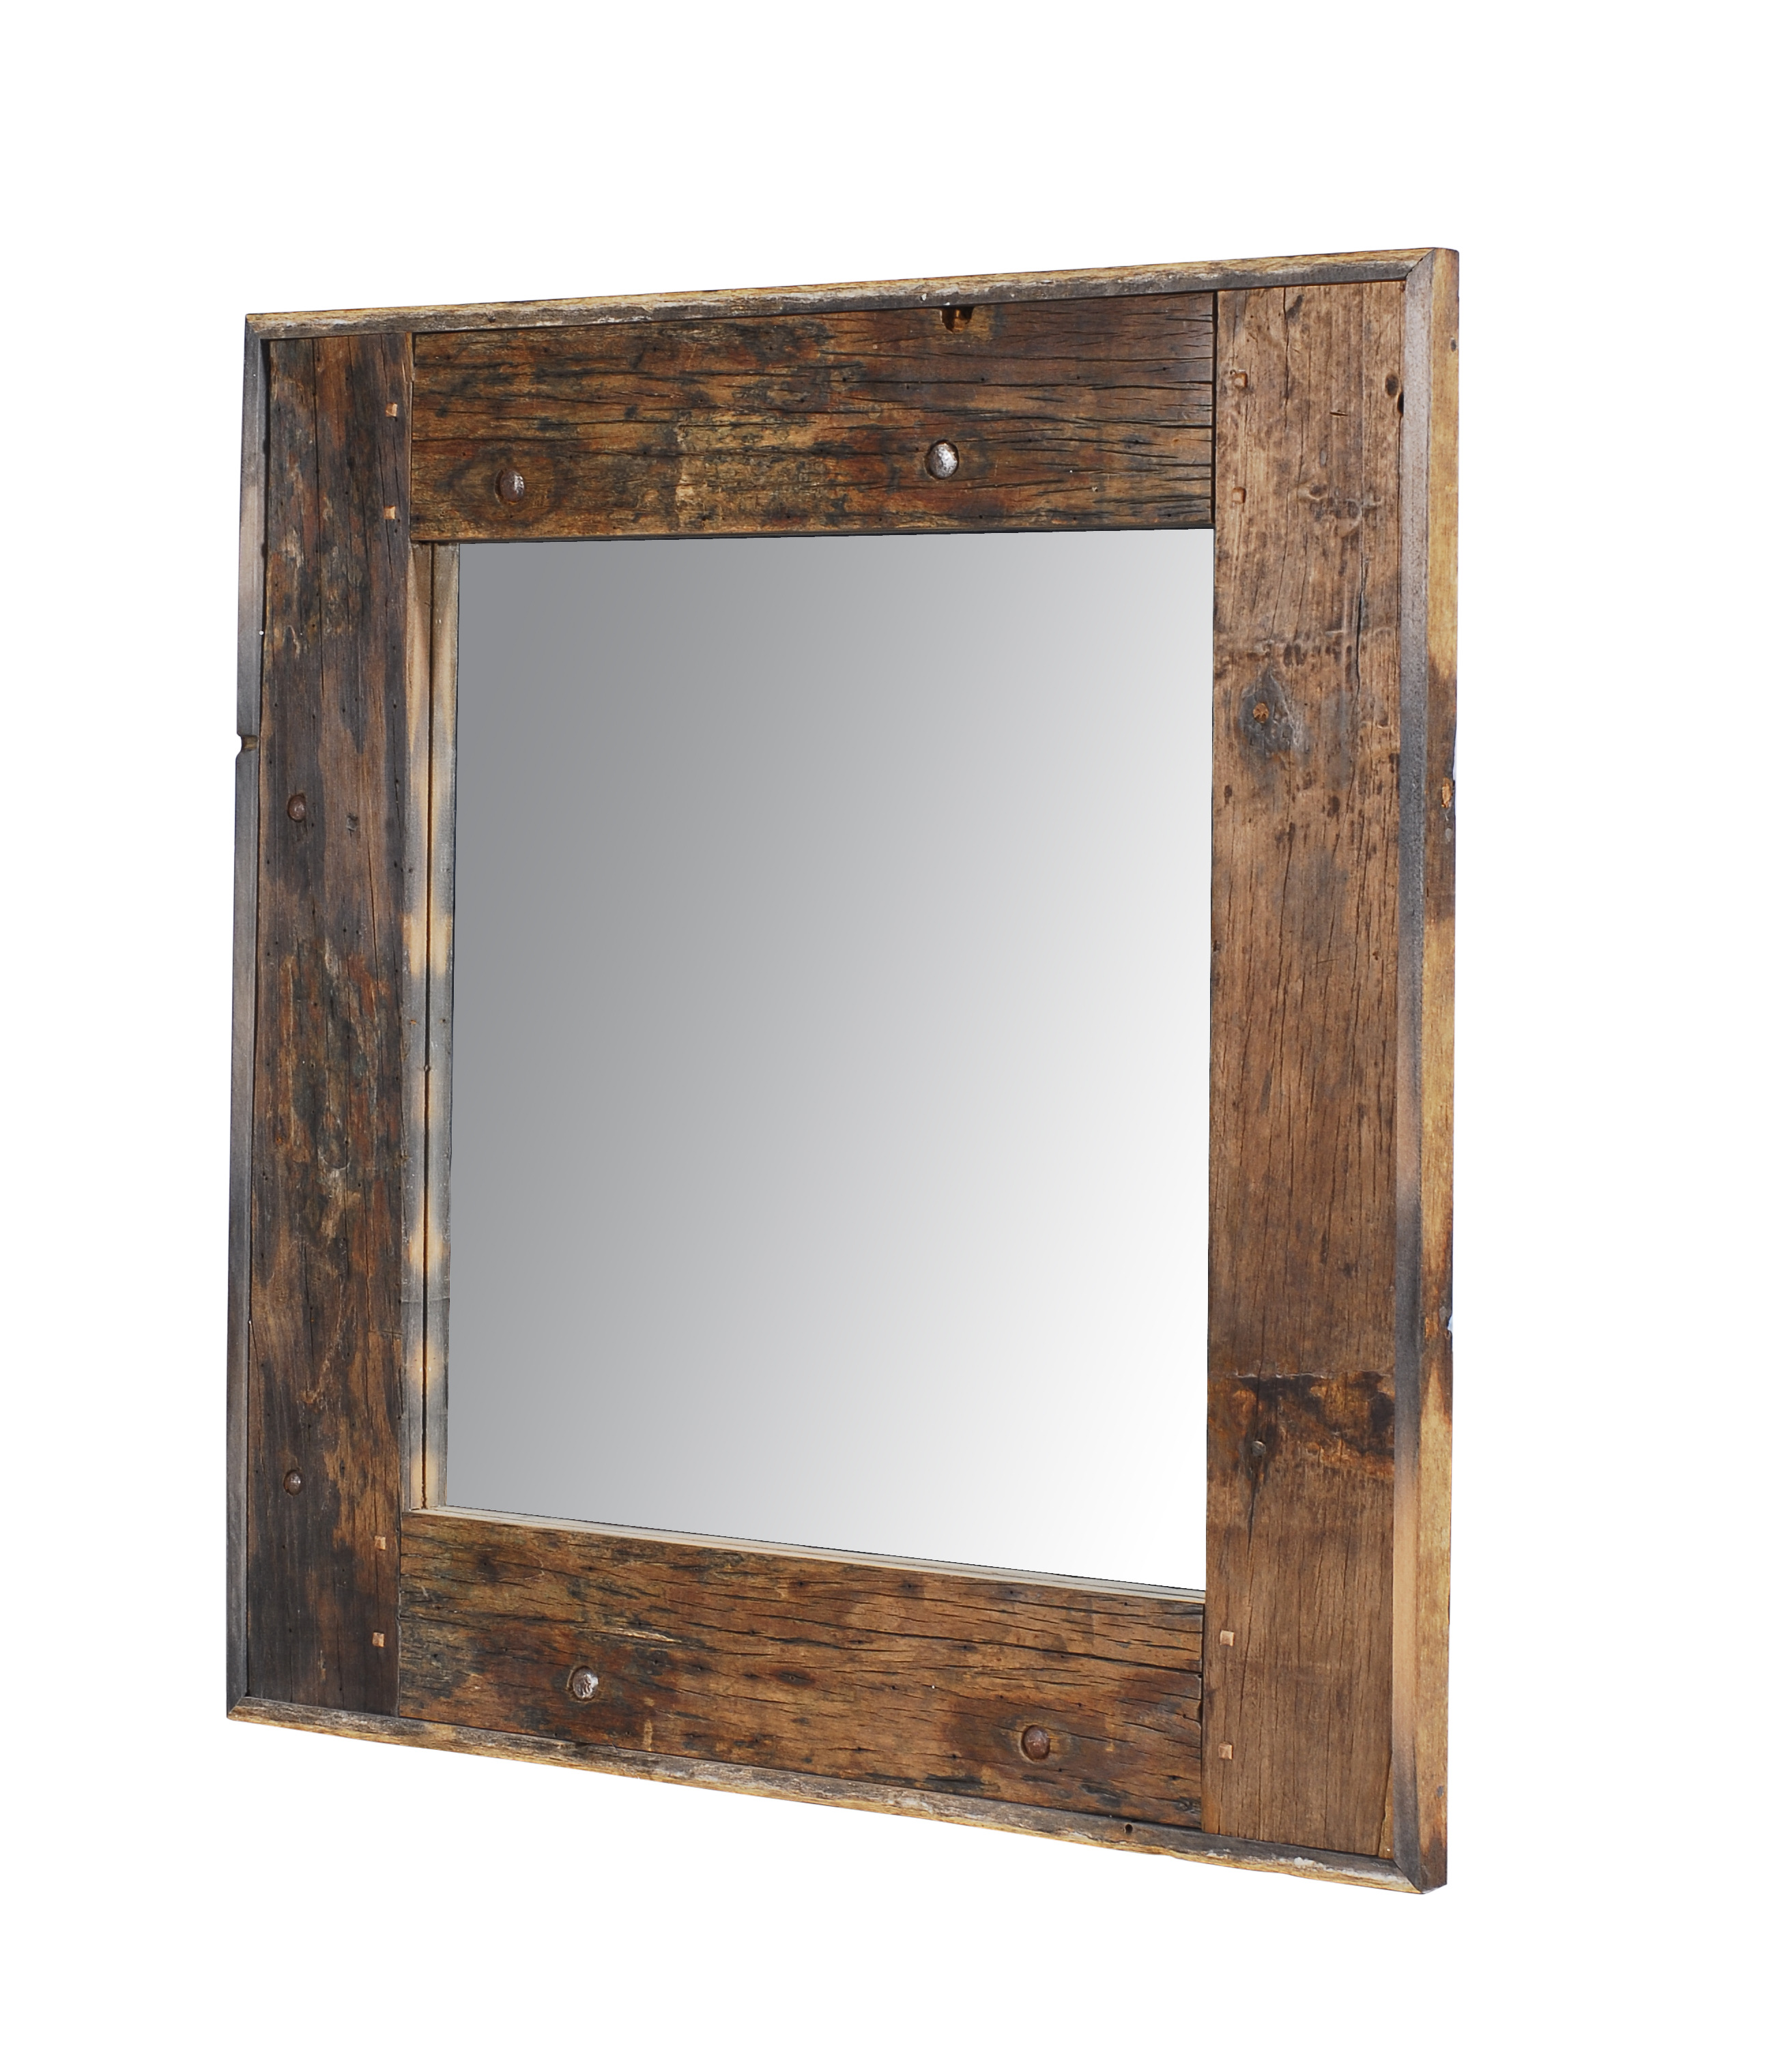 Lot 103 - Axel Mirror The Axel Mirror Crosses Old World And Industrial With Its Combination of Reclaimed